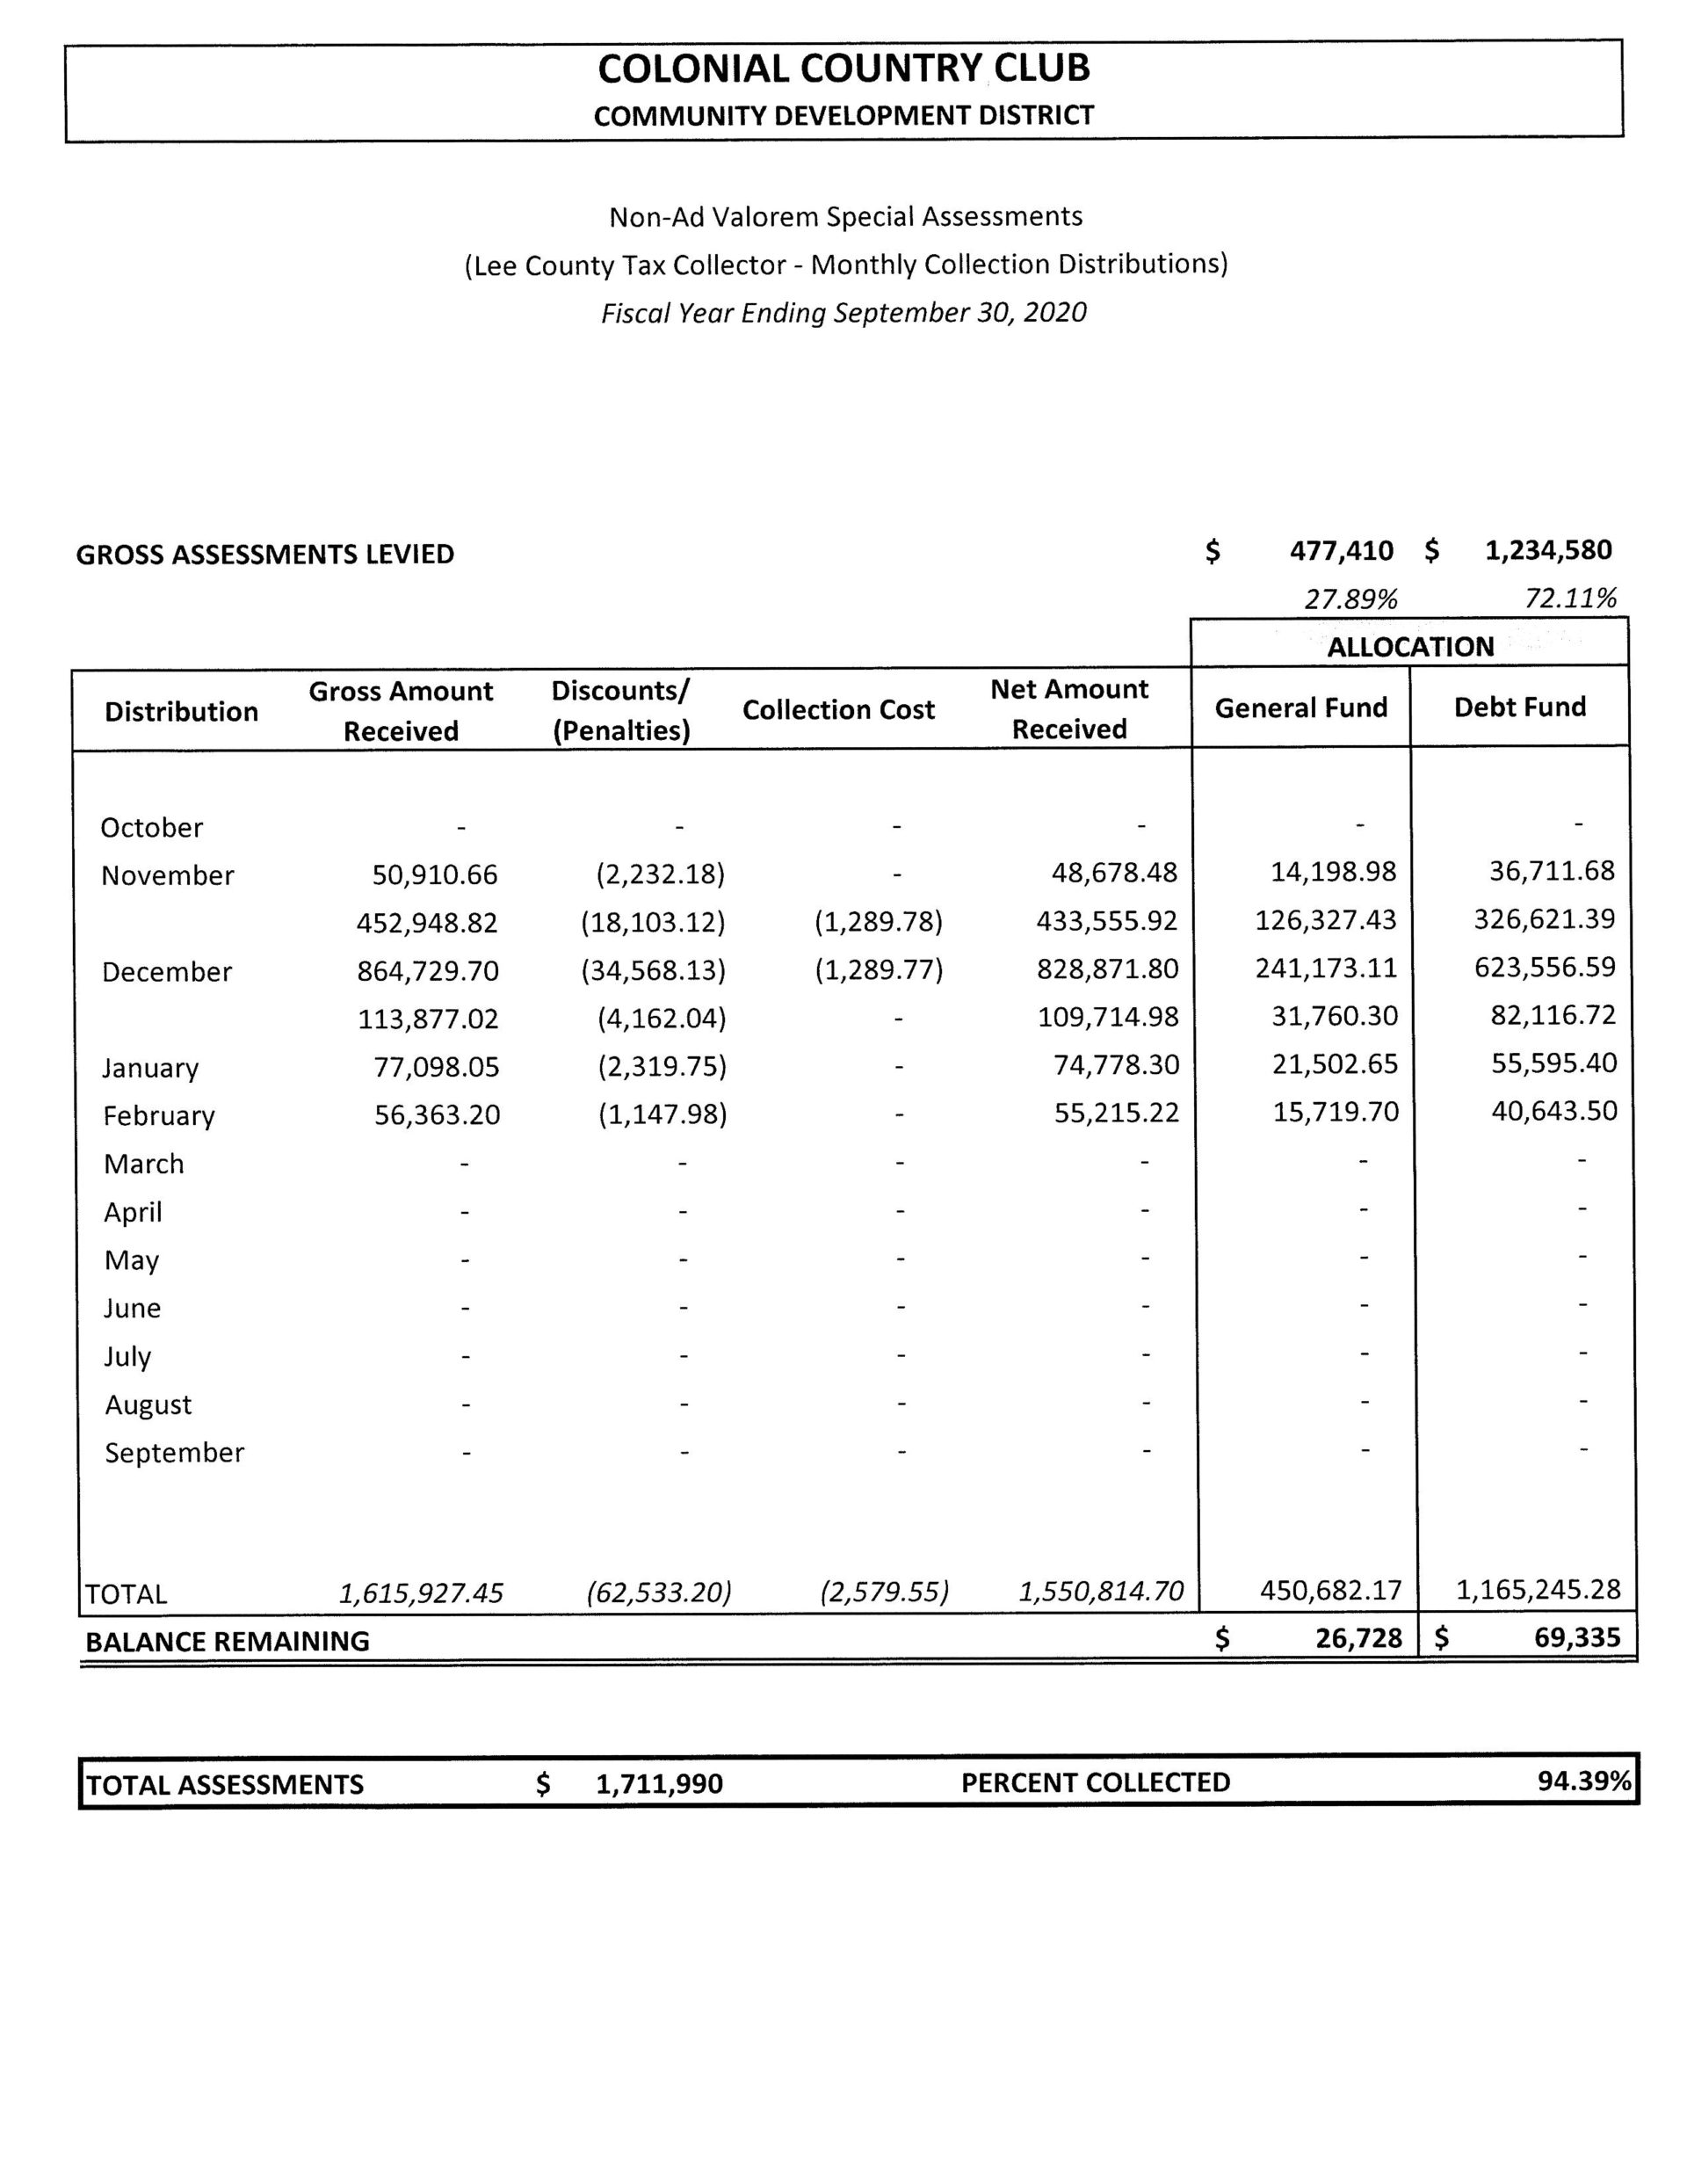 Colonial Country Club CDD Revenue Report